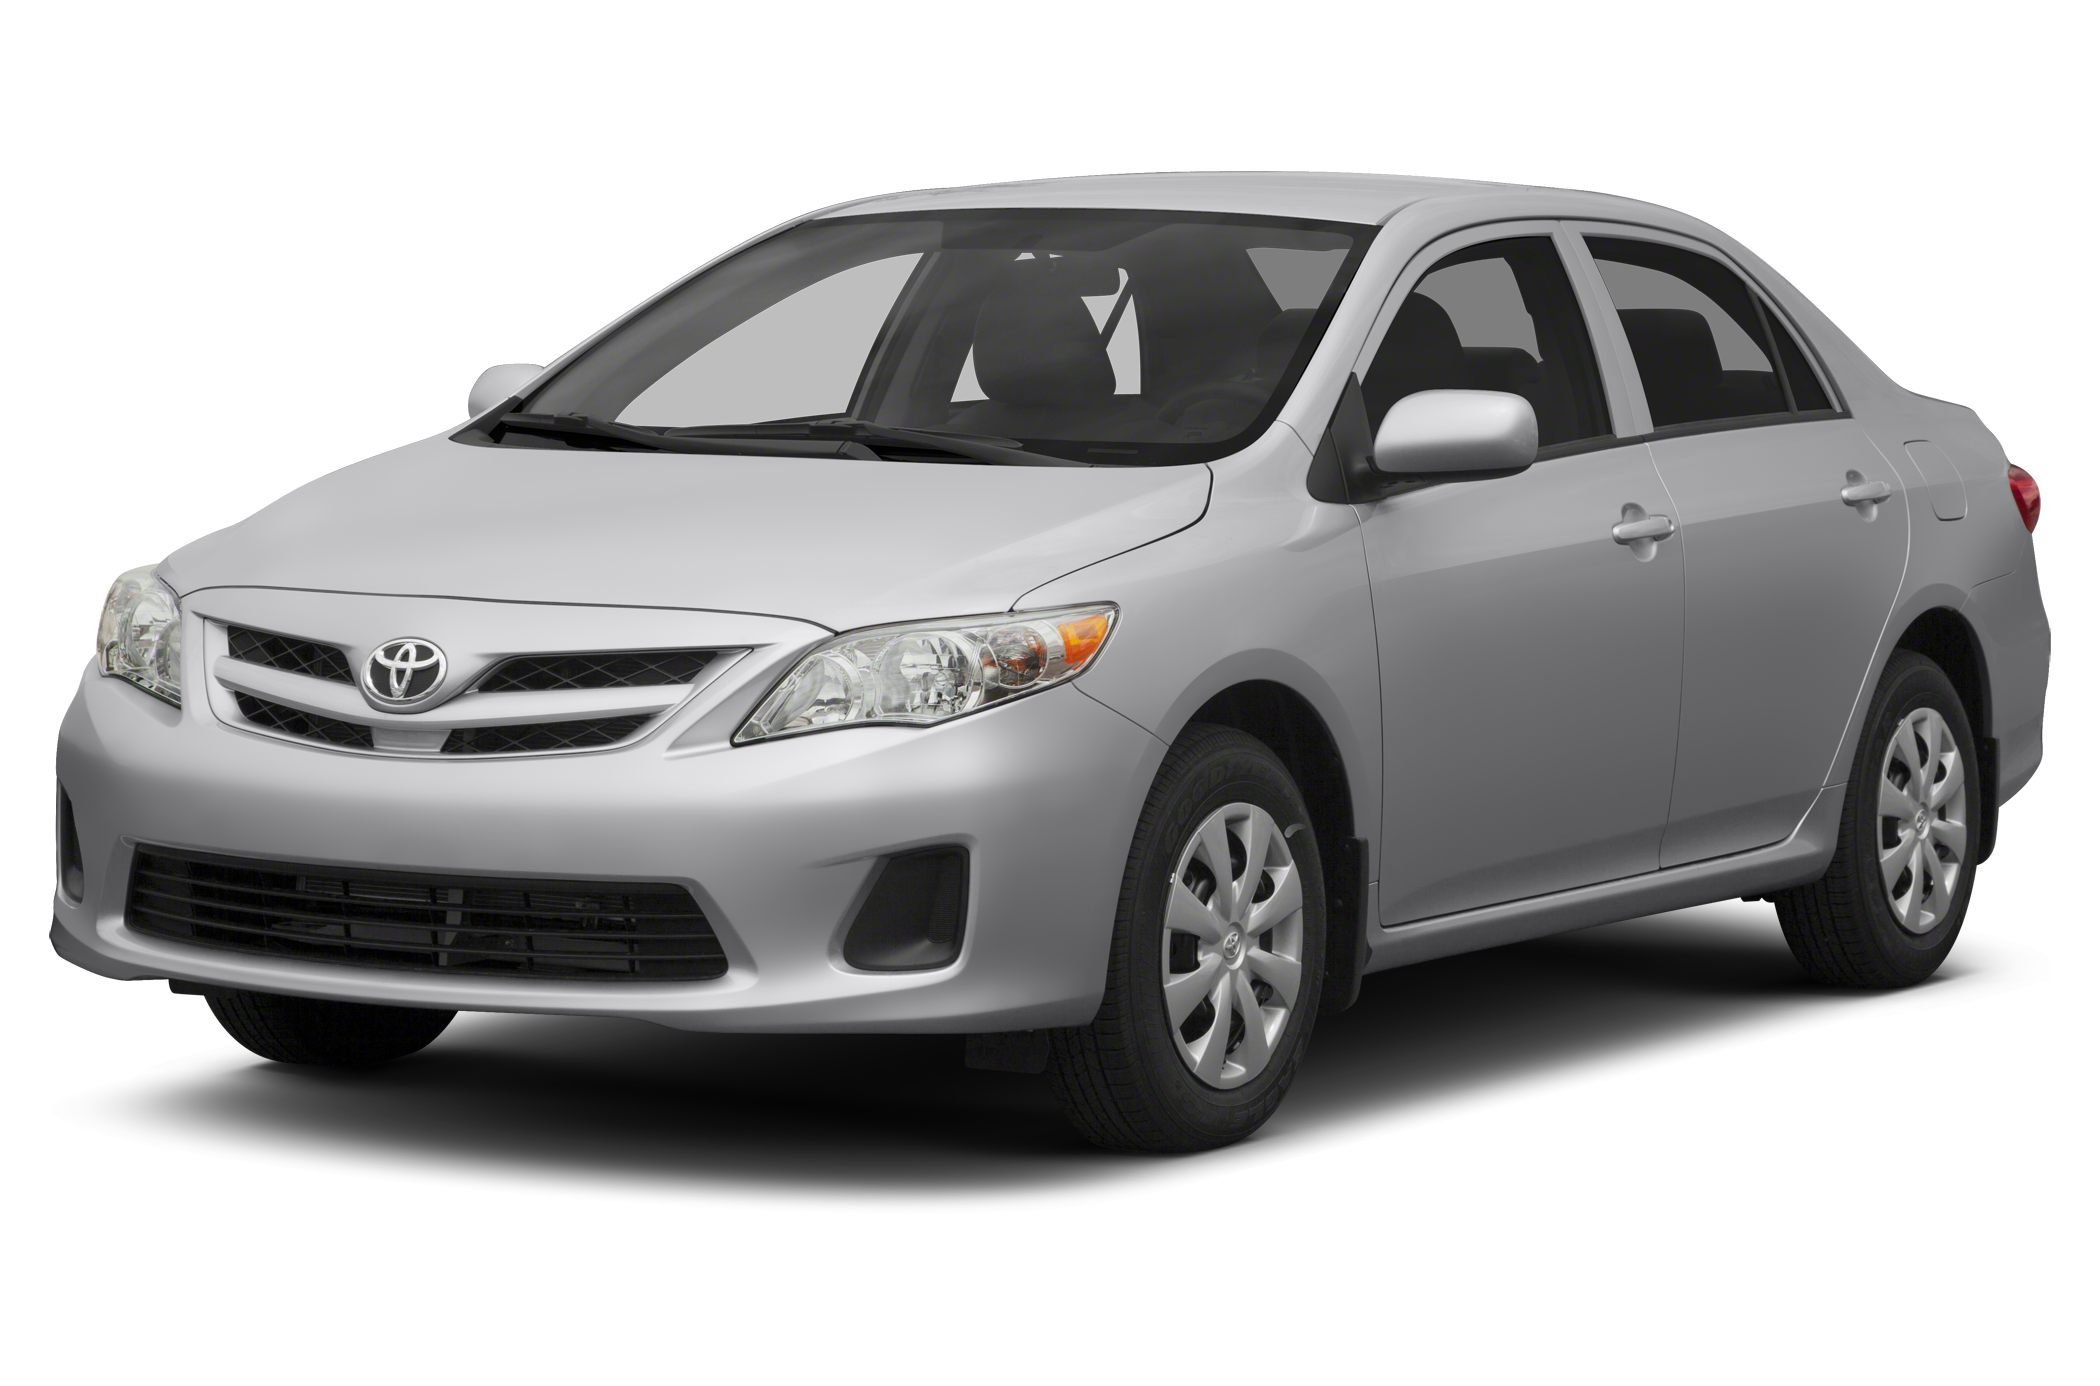 2012 Toyota Corolla LE Sedan for sale in Staunton for $14,900 with 35,247 miles